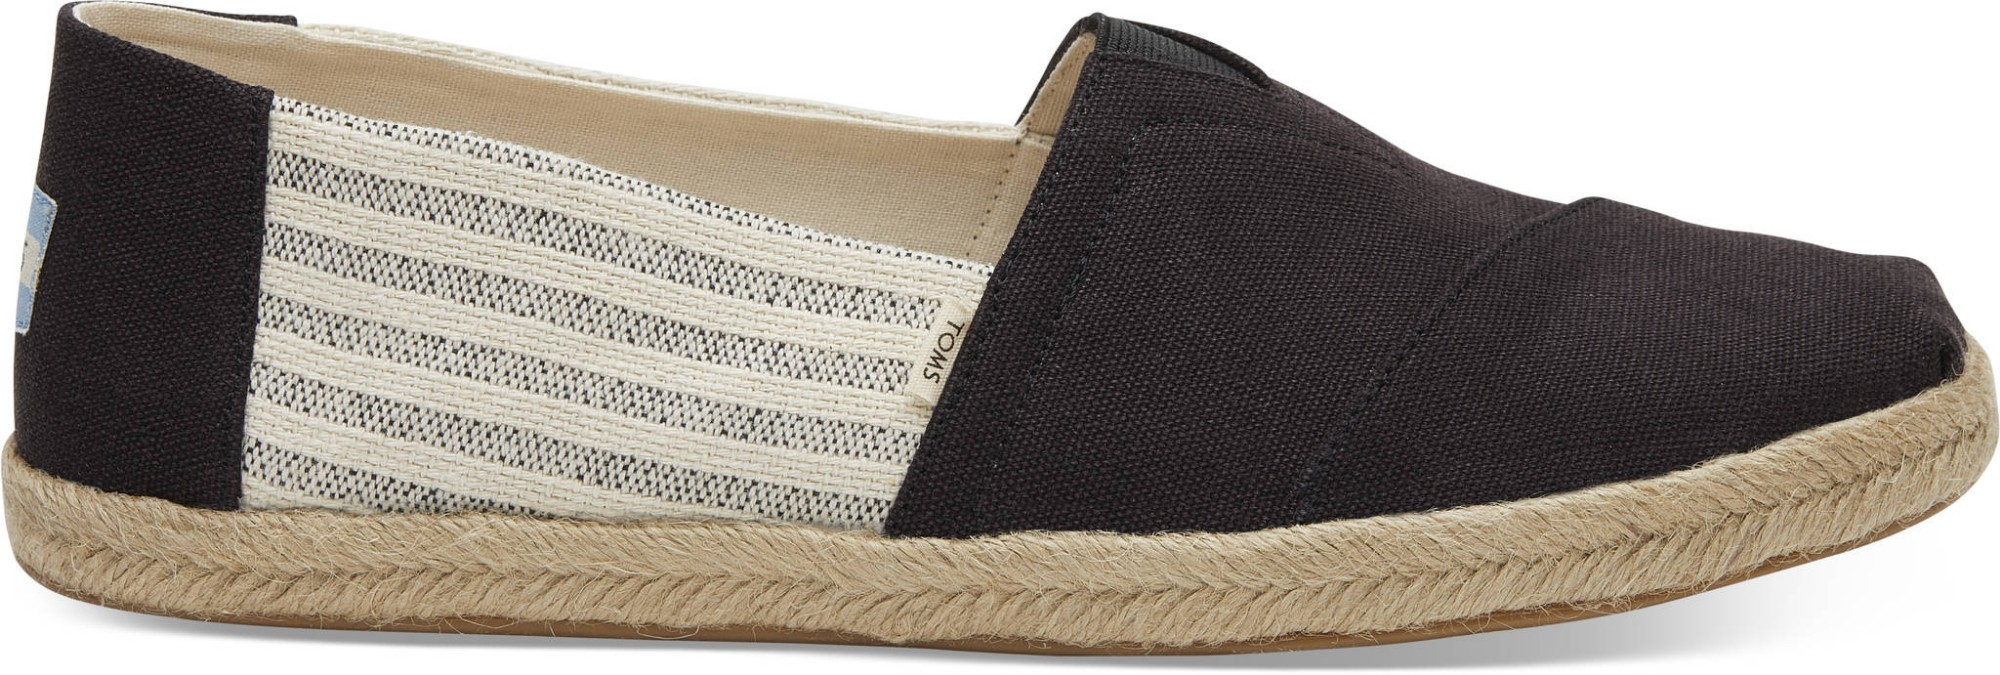 TOMS Canvas Ivy League on Rope Men's Alpargata Black 43